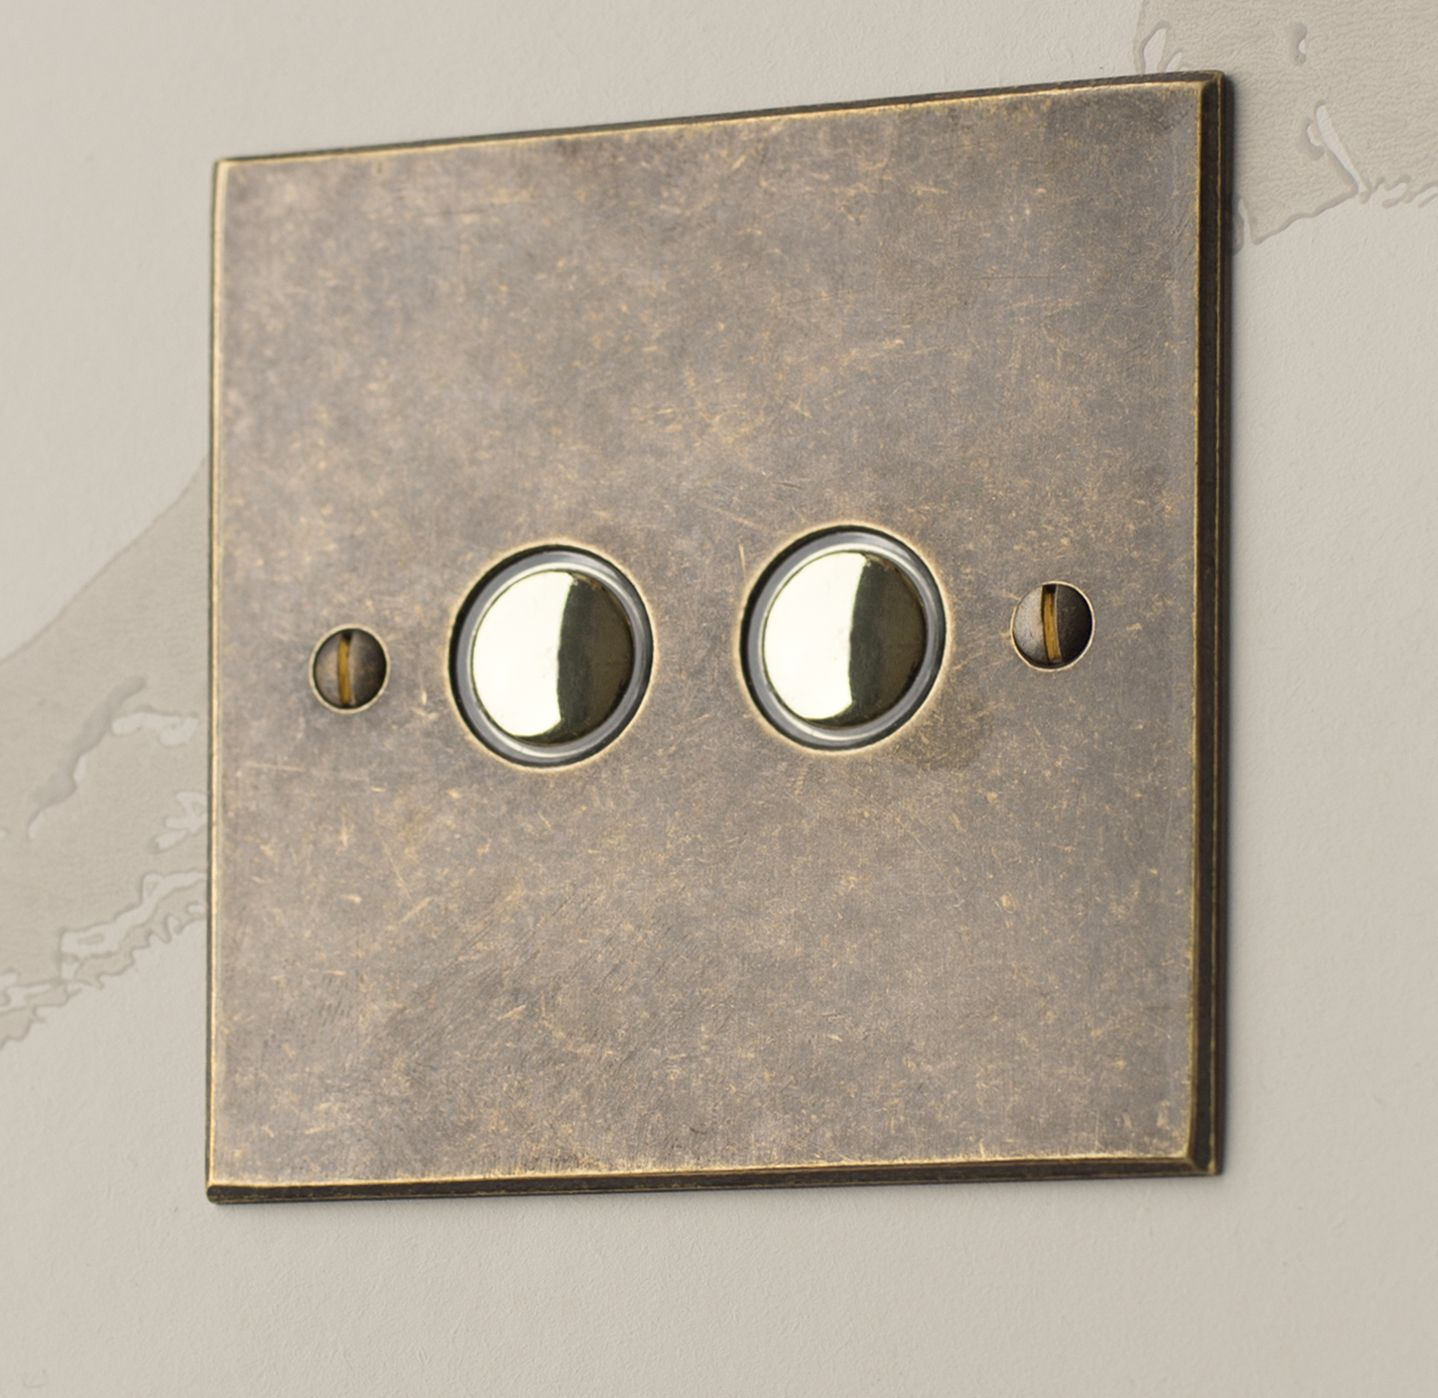 Retro Light Switches and Switch Plates by Fontini | Light switches ...